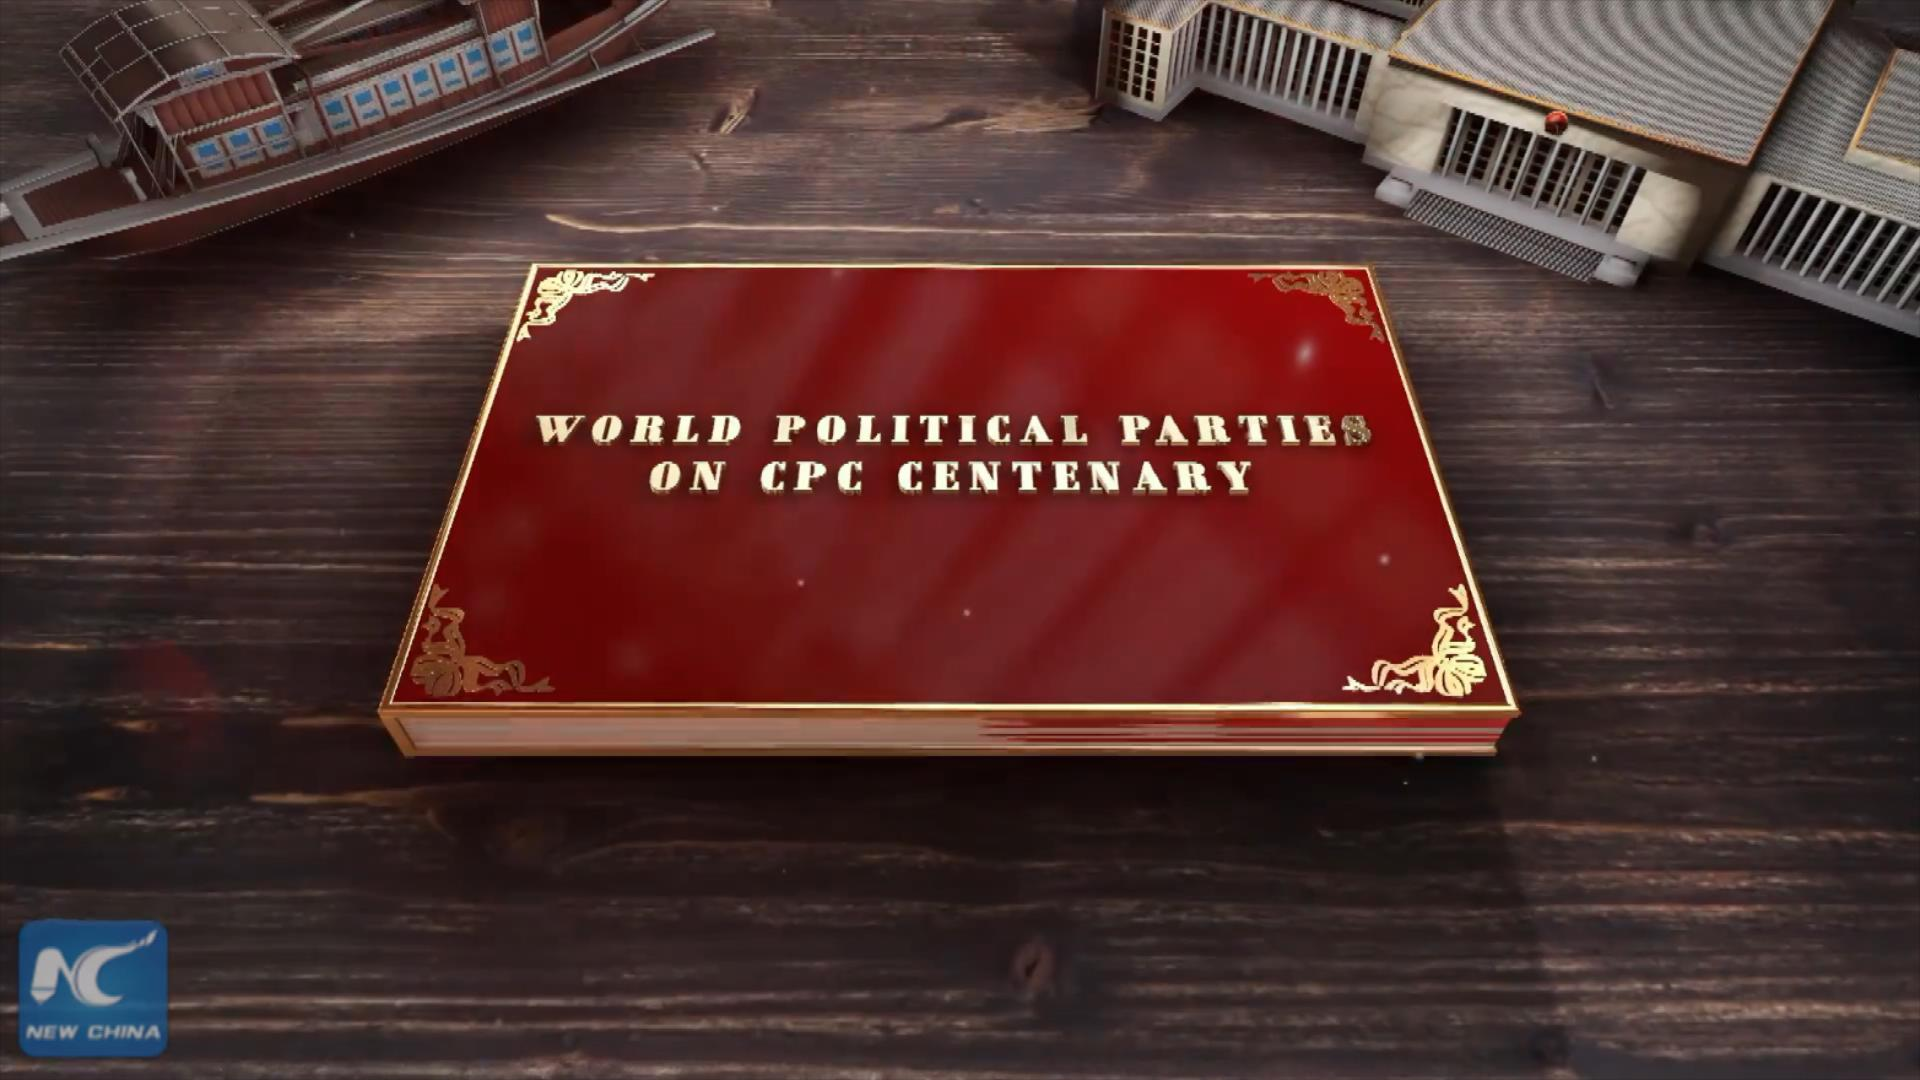 GLOBALink| World political parties on CPC centenary: People-centered philosophy